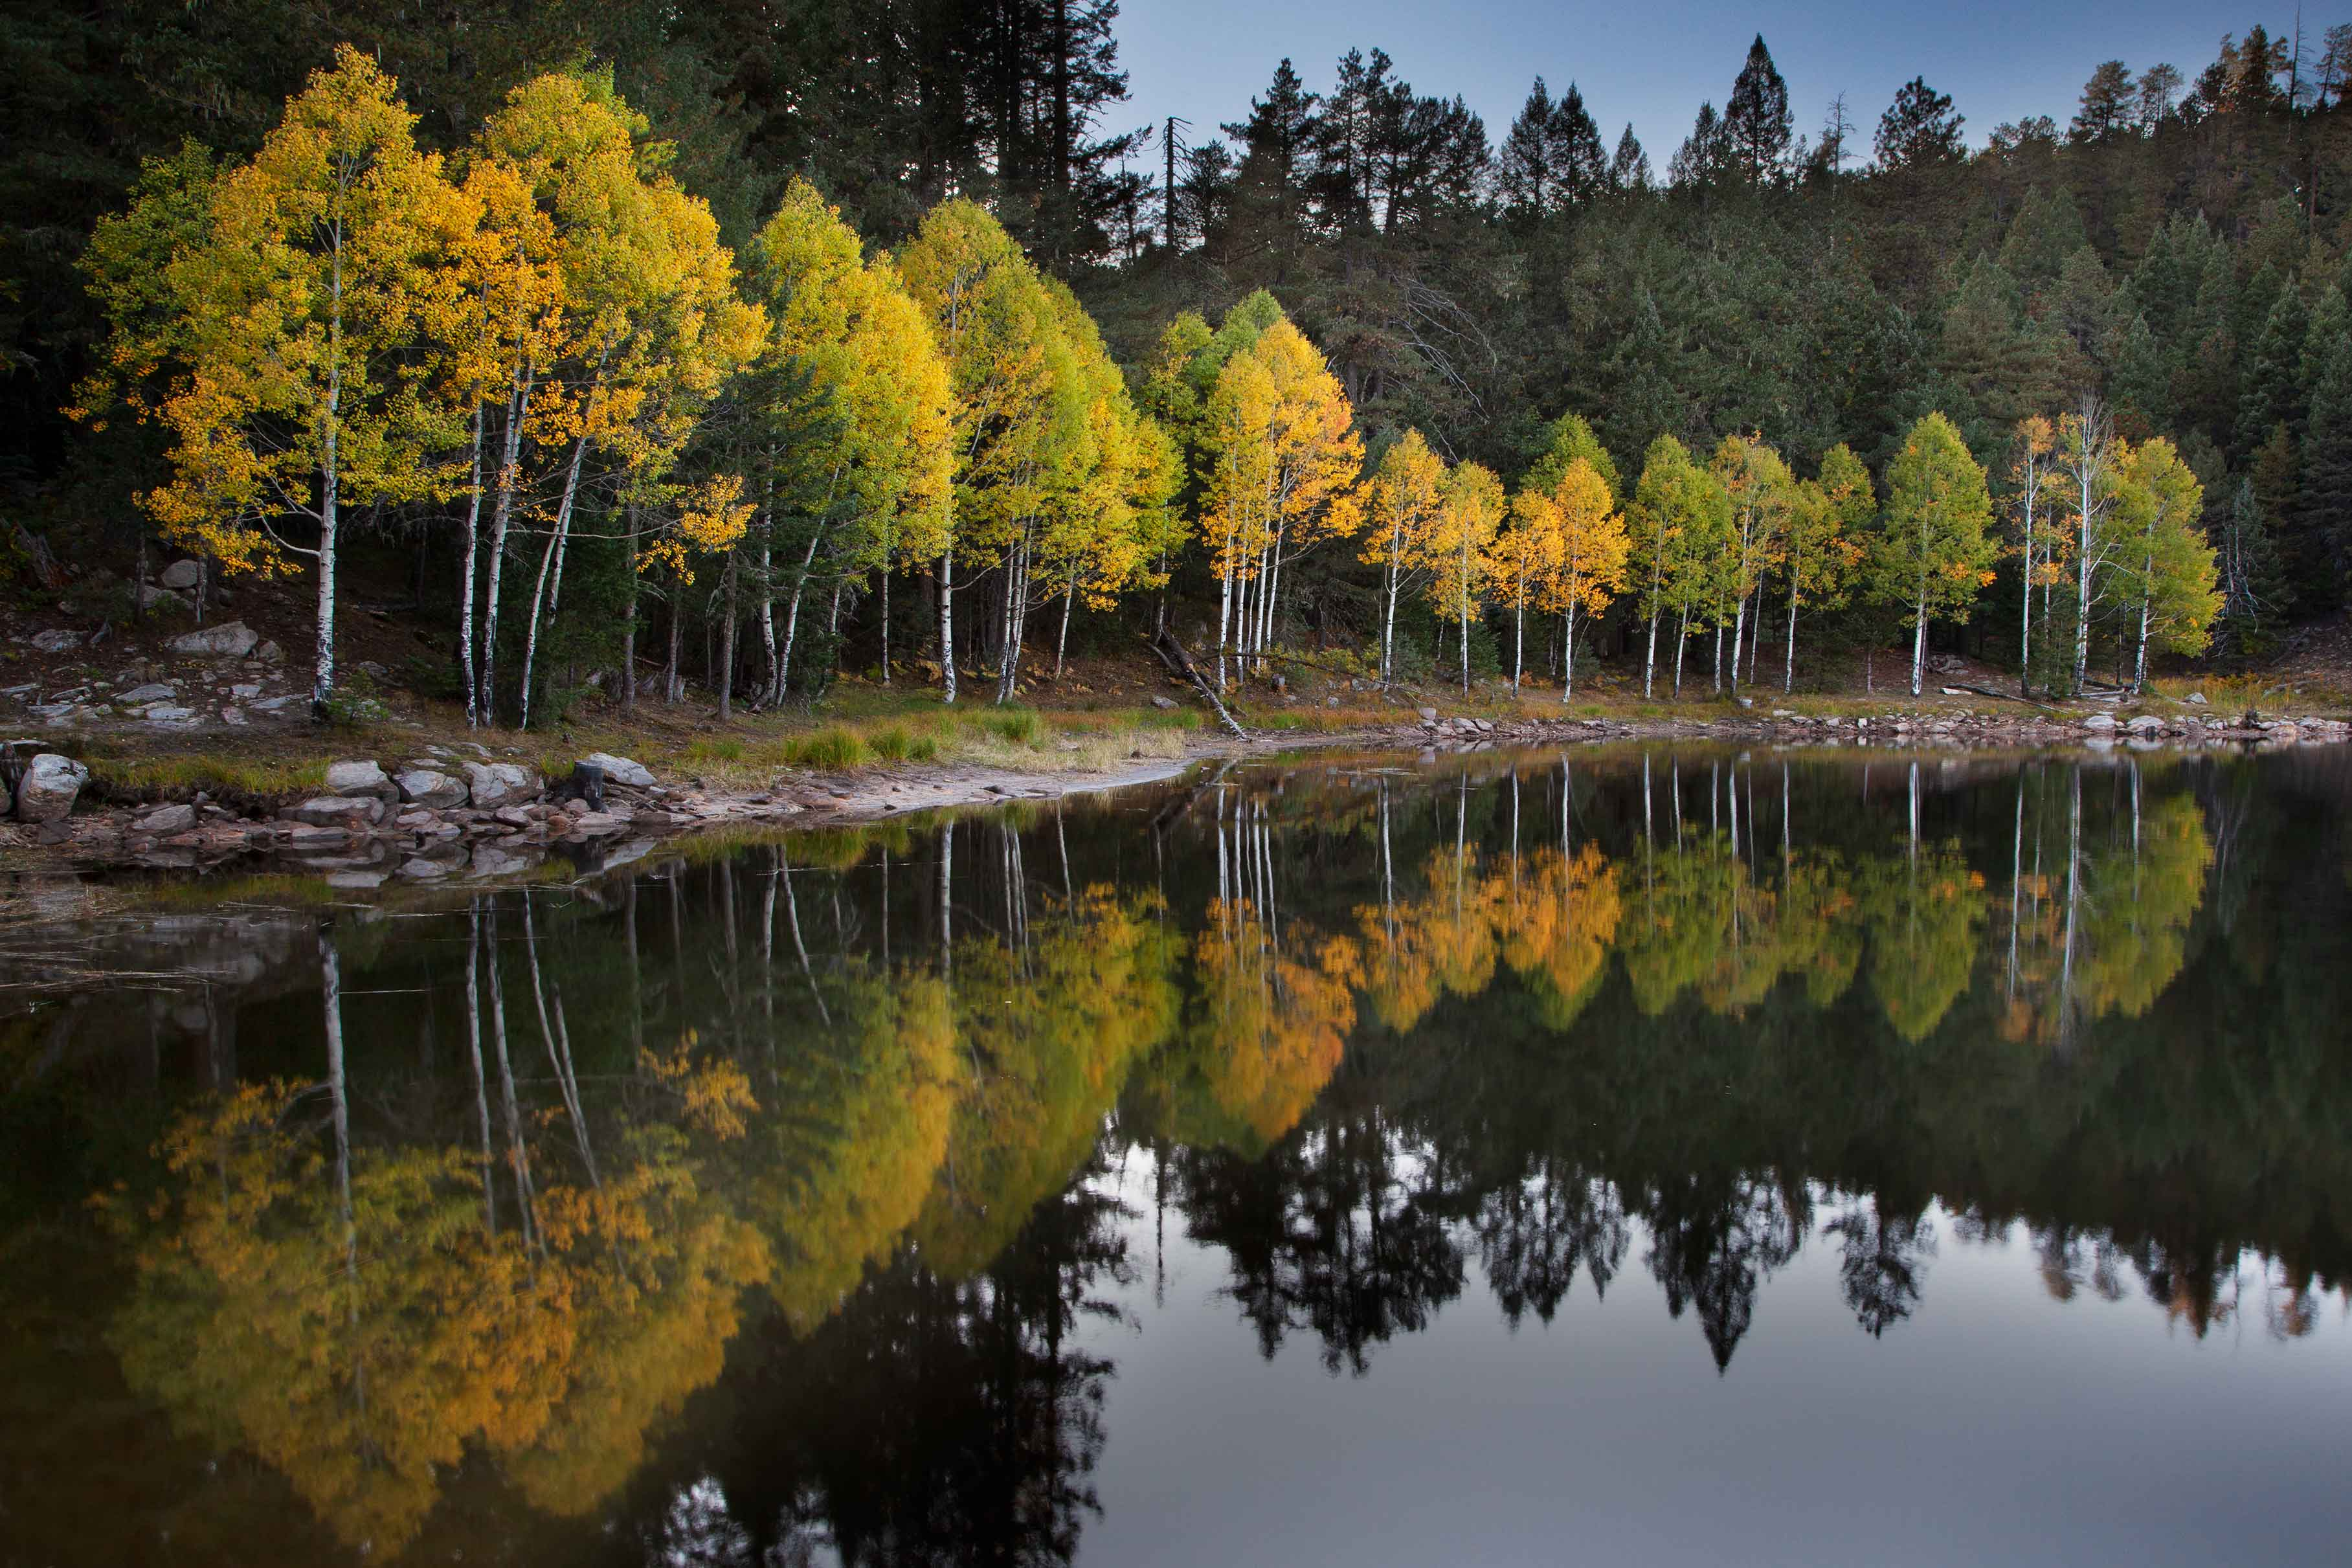 Aspen trees in autumn at Bear Canyon Lake on the Mogollon Rim, Arizona